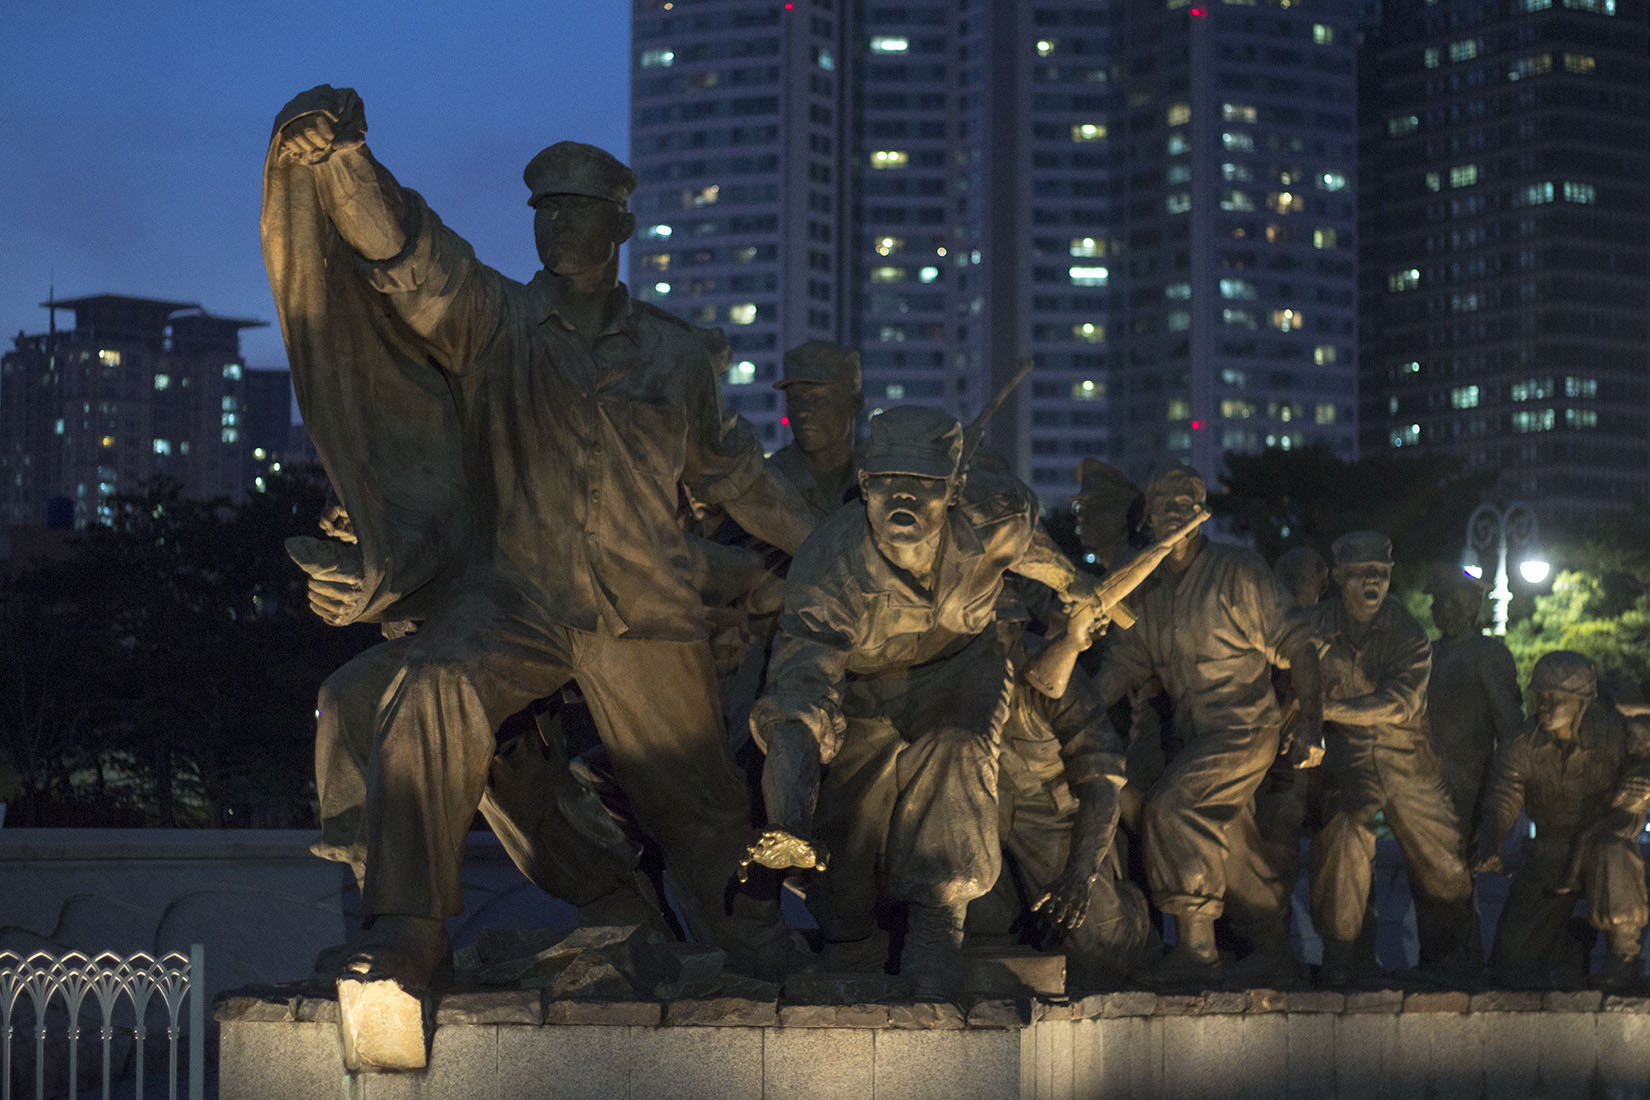 Seoul, bronze soldiers statue, South Korean flag, night, buildings, war